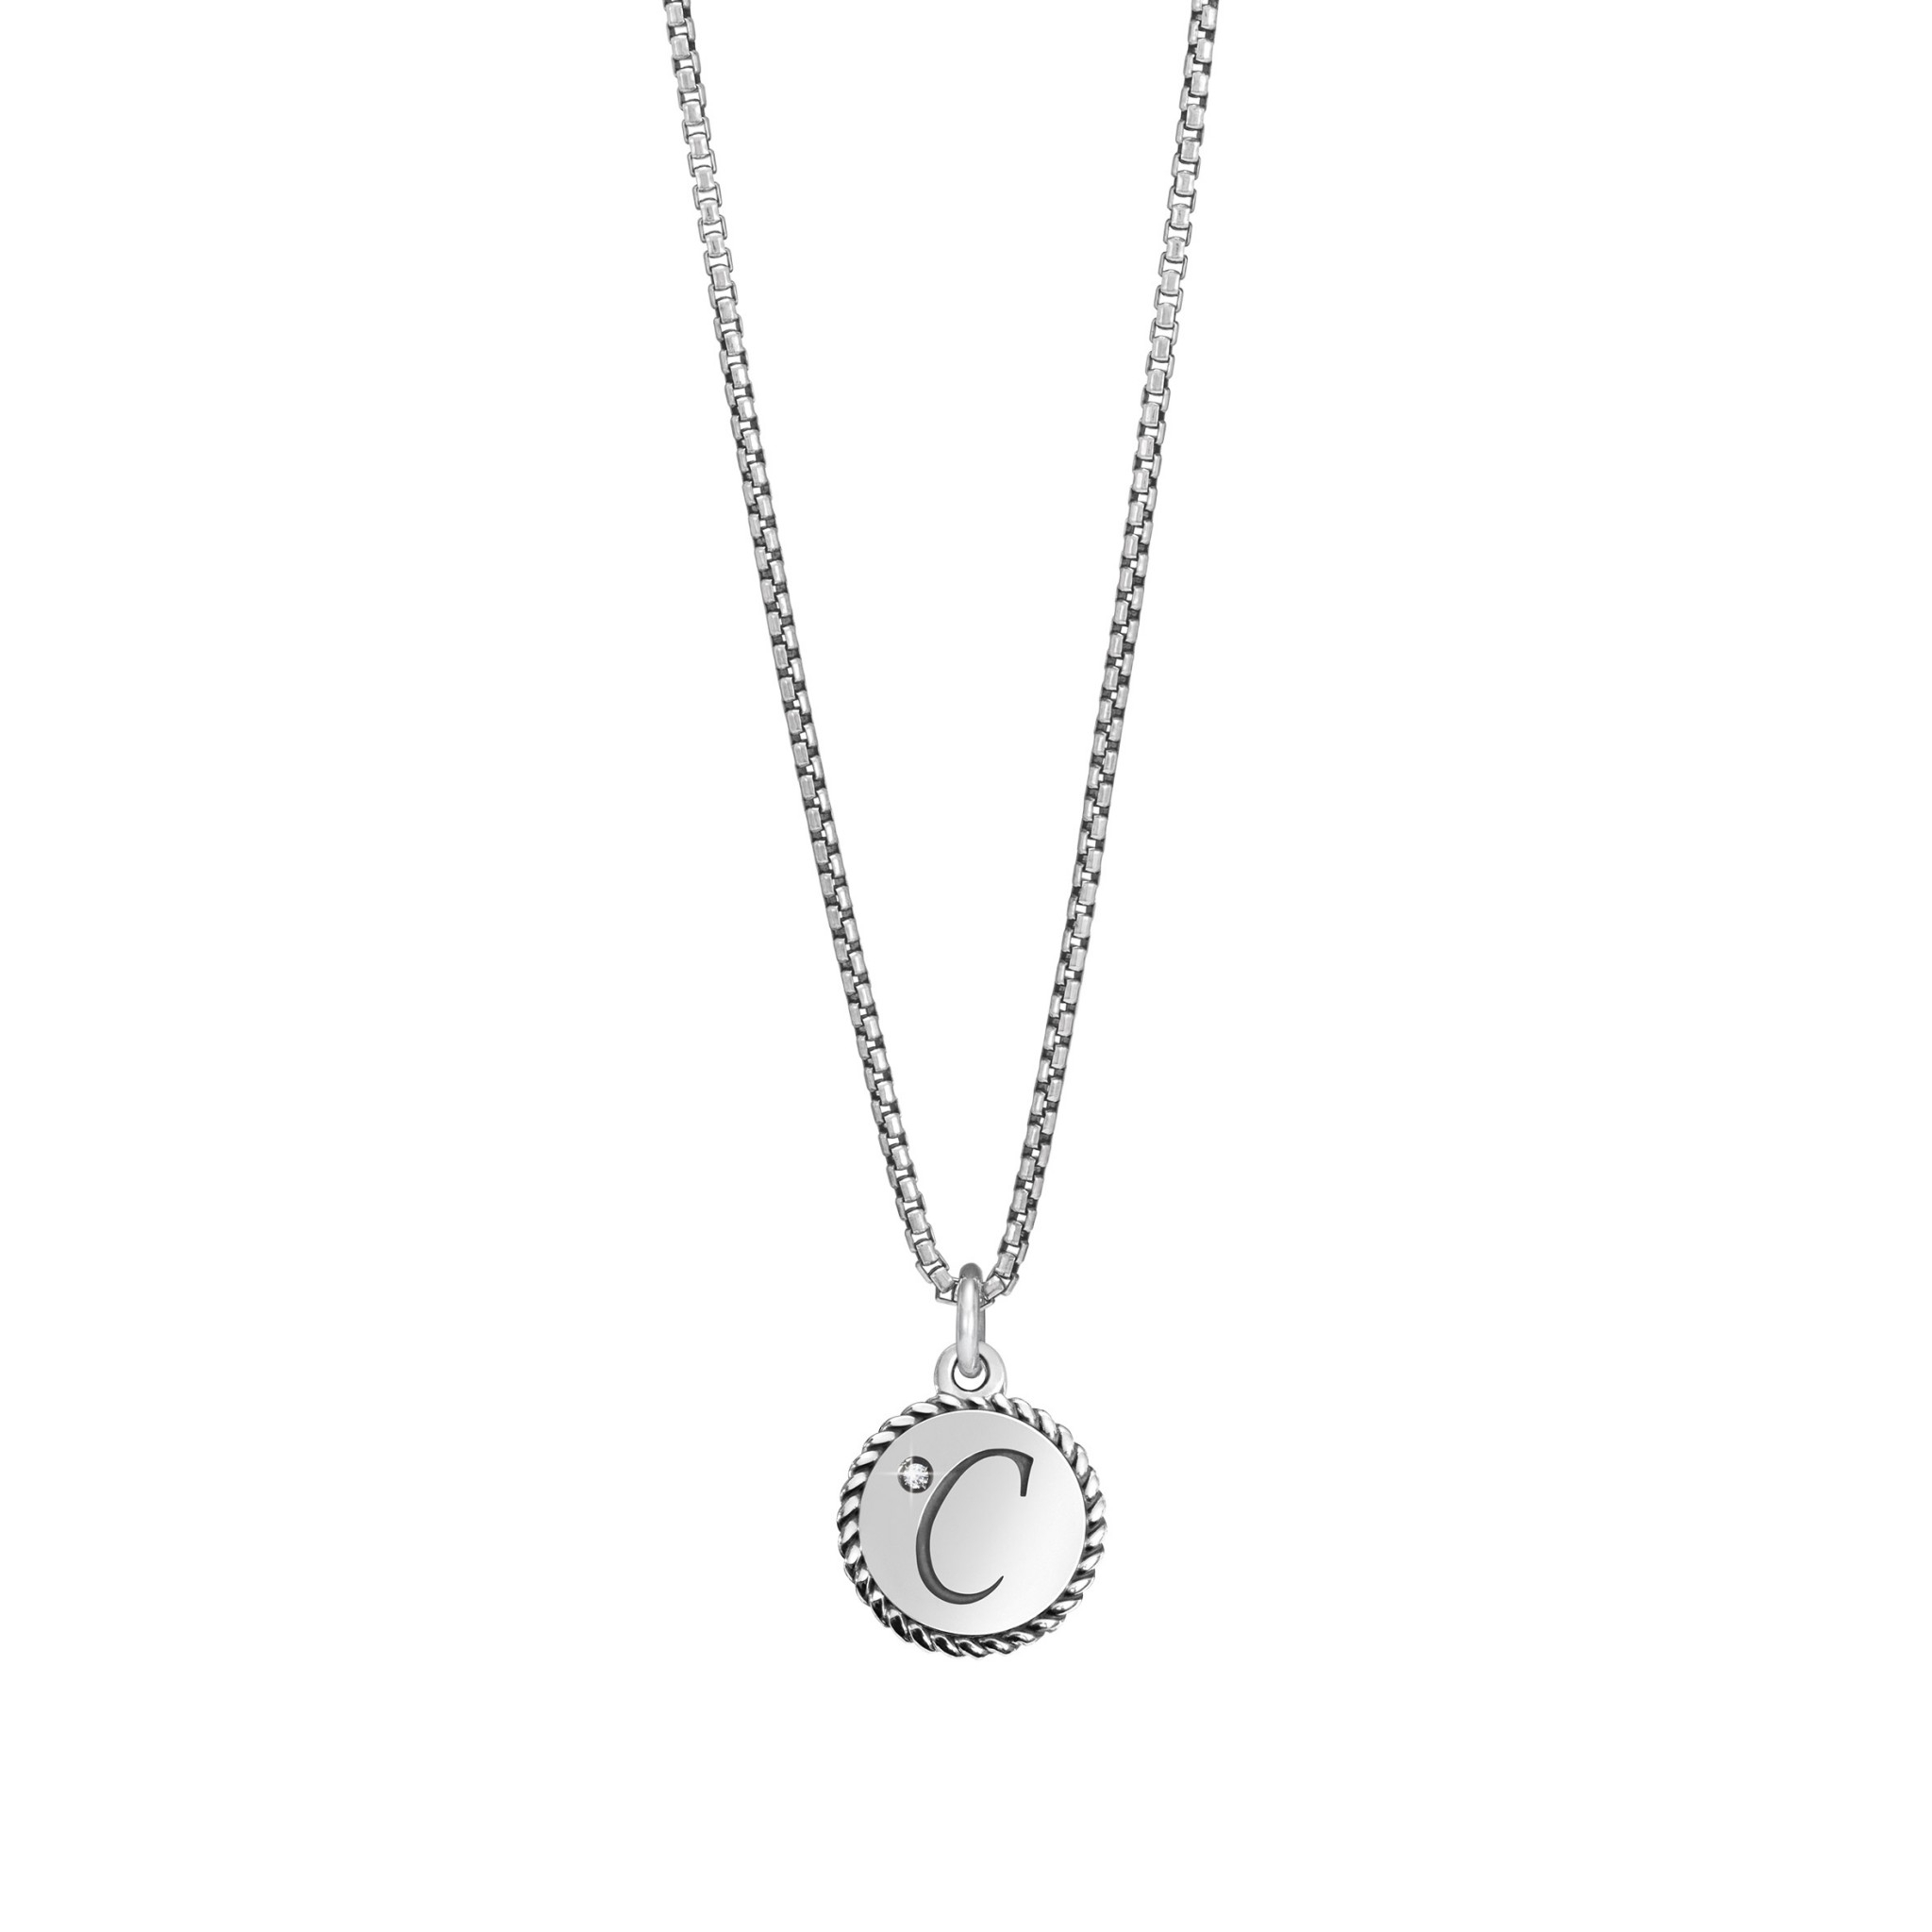 Necklace With Letter C In Silver And Gemstone In Current Letter I Alphabet Locket Element Necklaces (View 17 of 25)